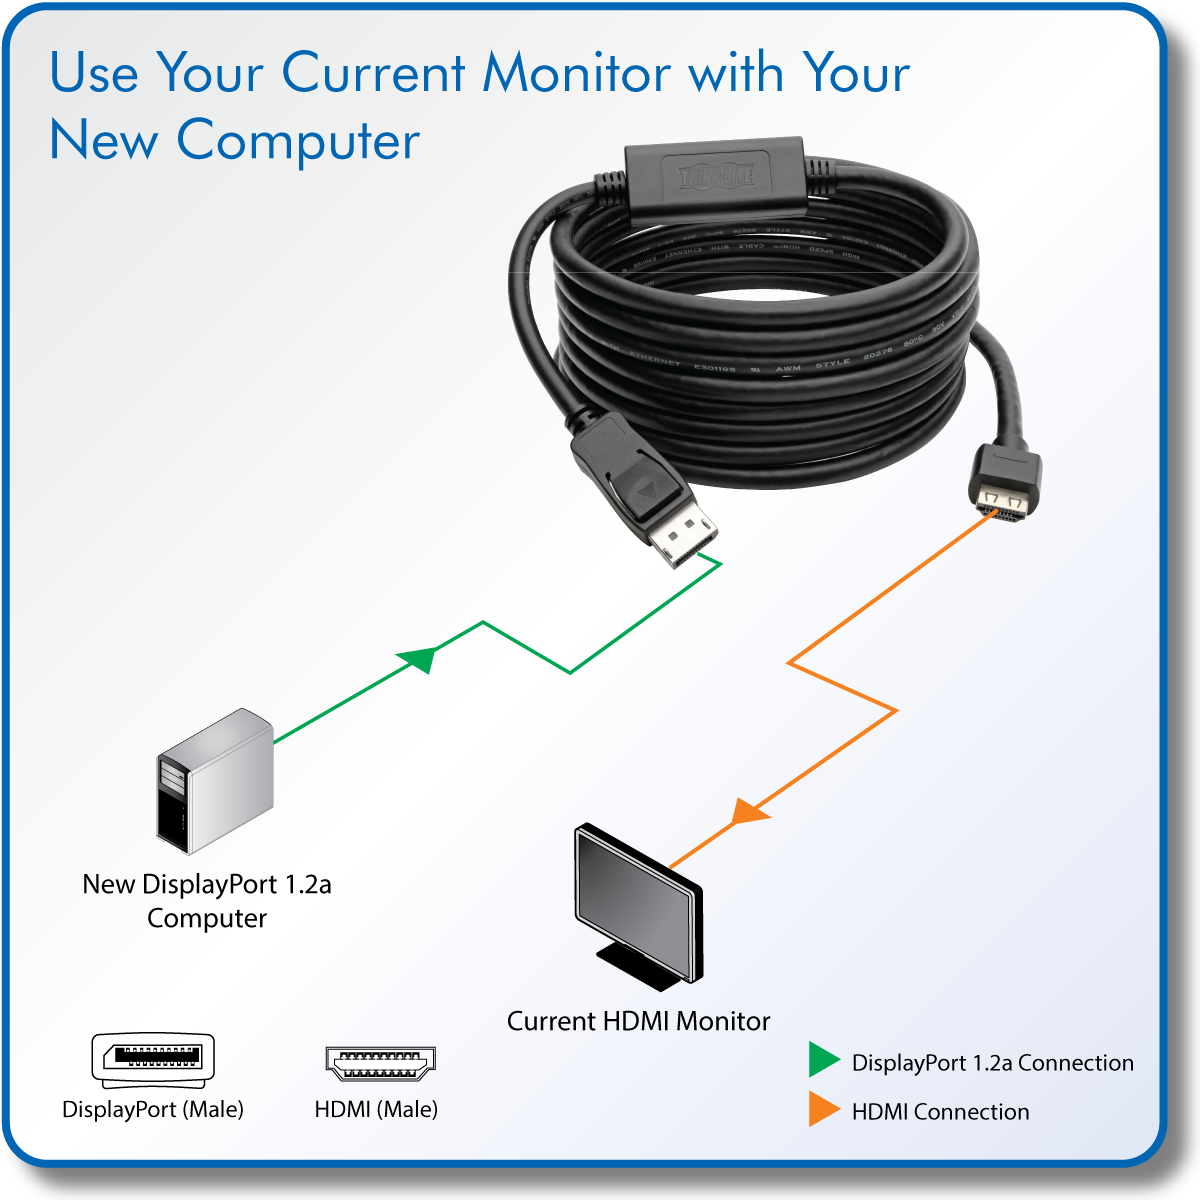 directly connect an hdmi monitor to a displayport 1 2a computer